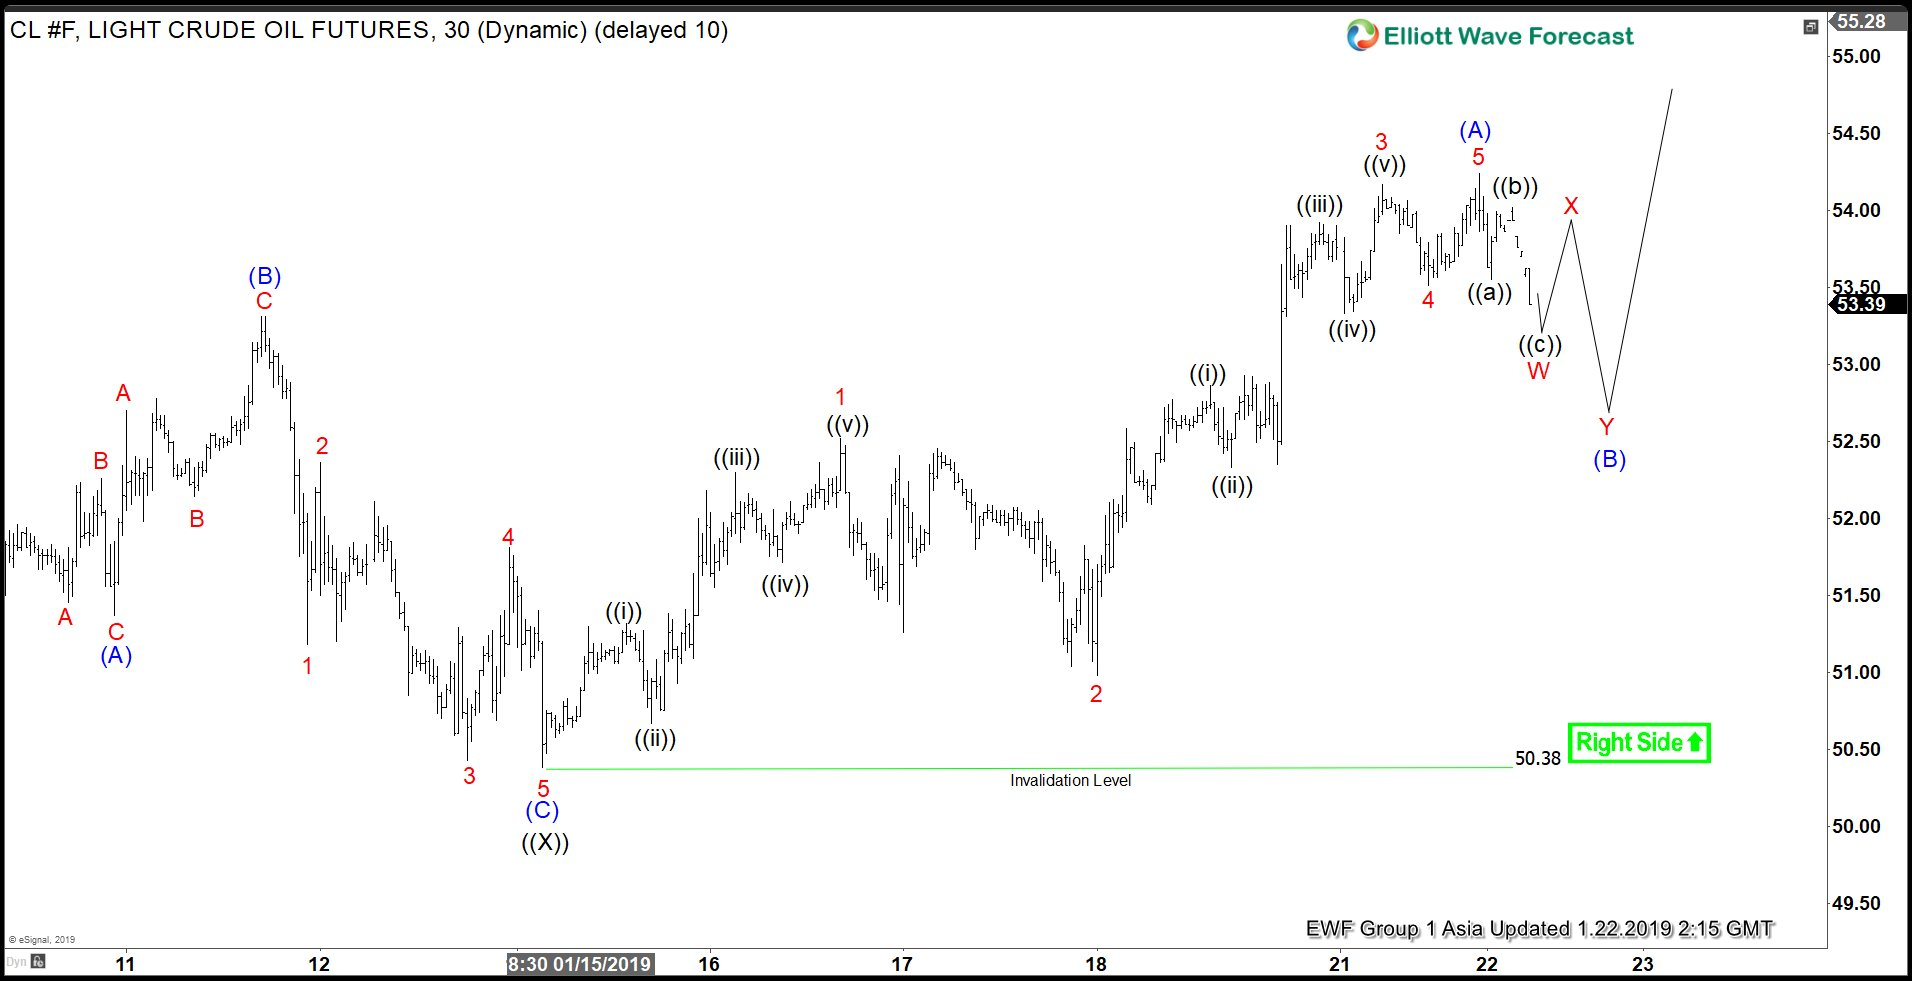 Elliott Wave view in Oil suggests more upside